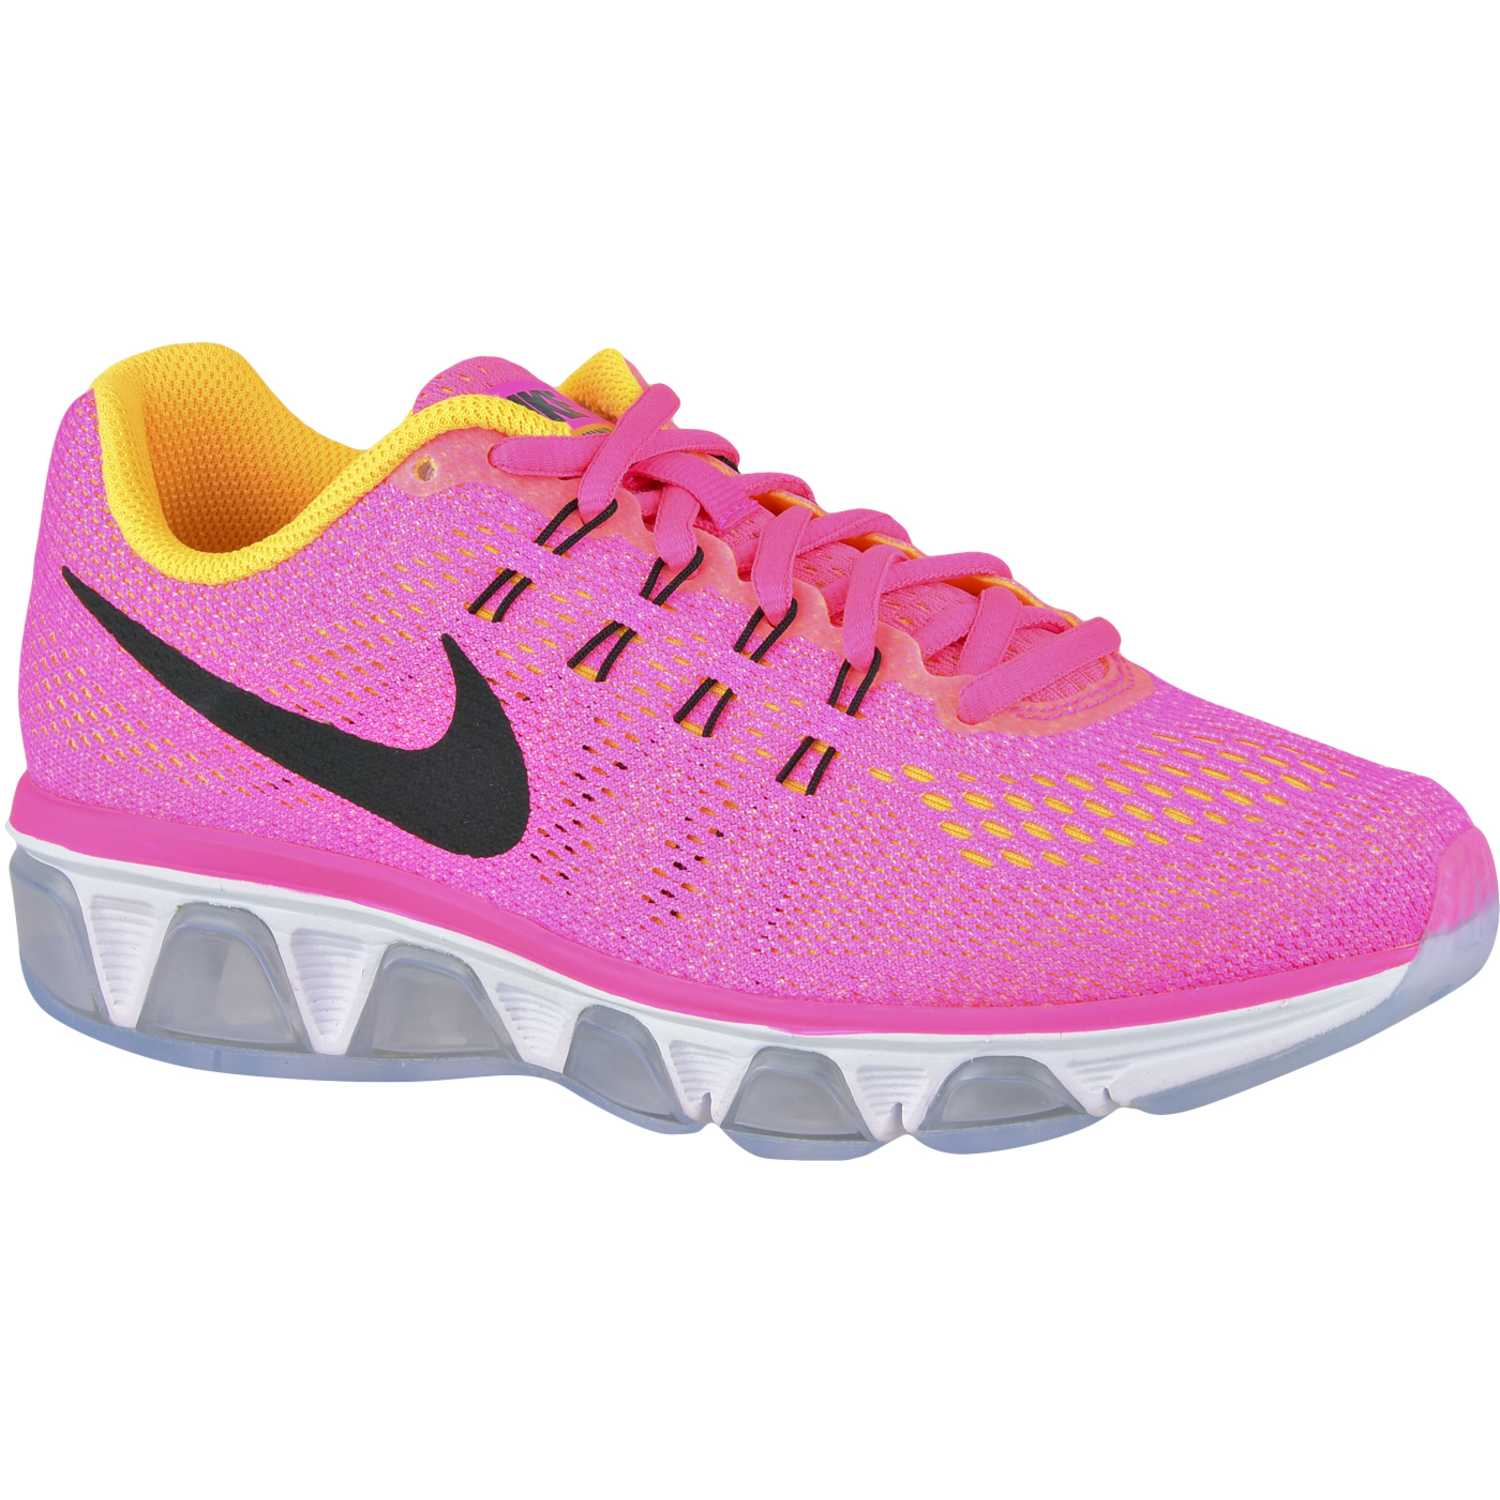 Casual de Mujer Nike Fucsia wmns air max tailwind 8